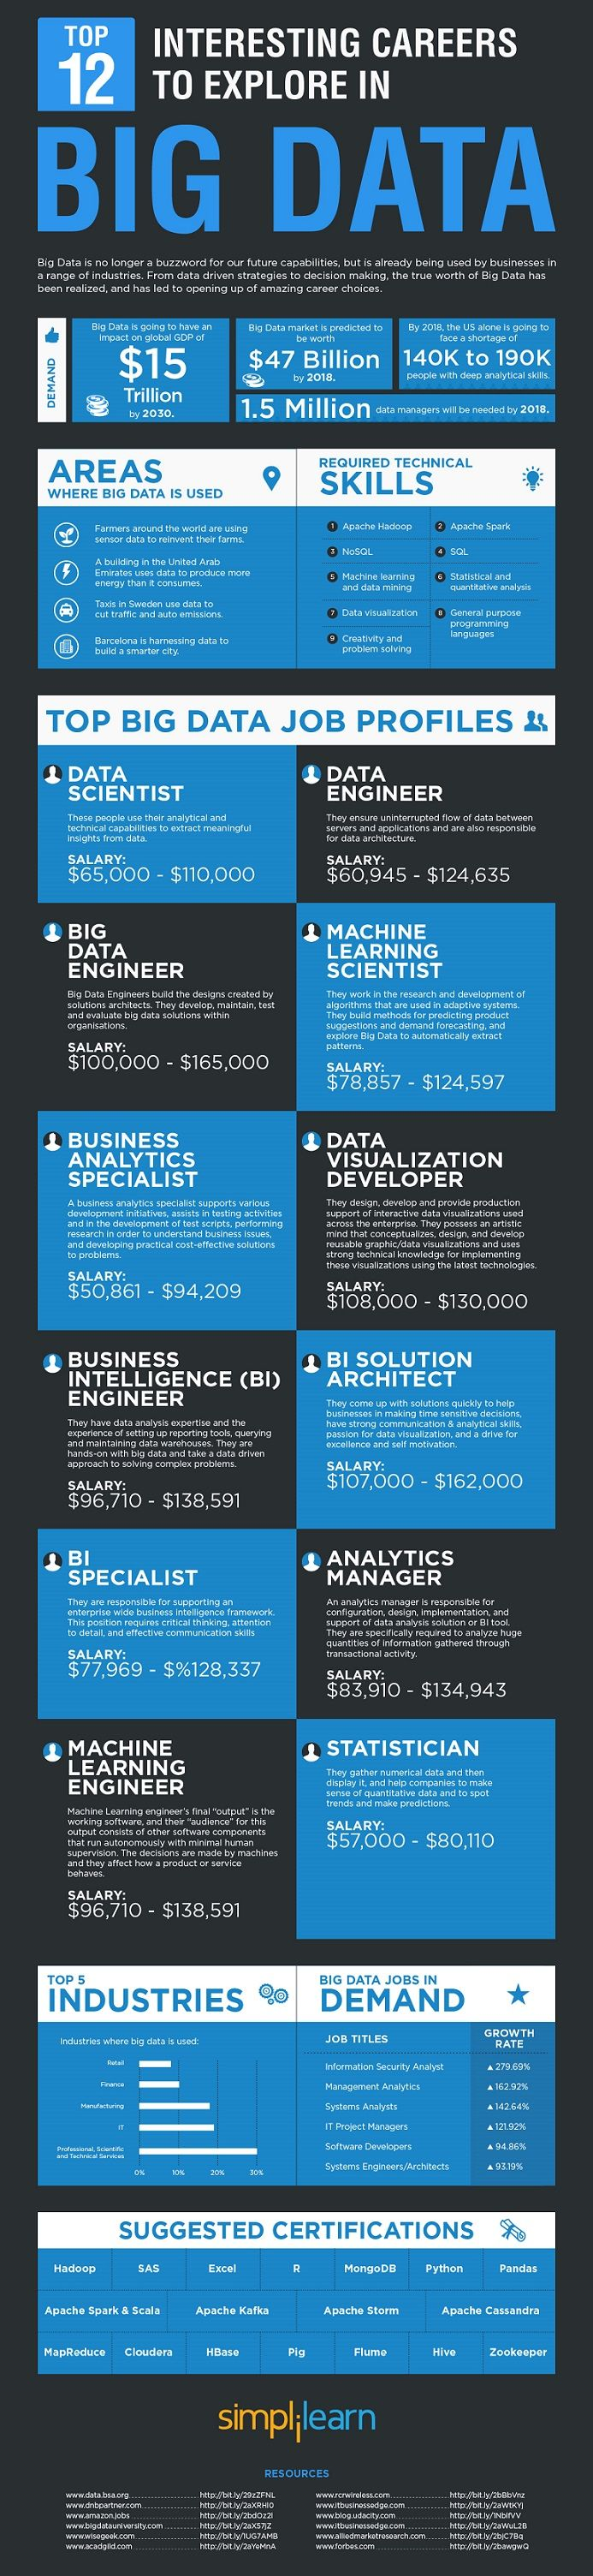 Big Data Resume%0A Top    Interesting Careers to Explore in Big Data  insideBIGDATA